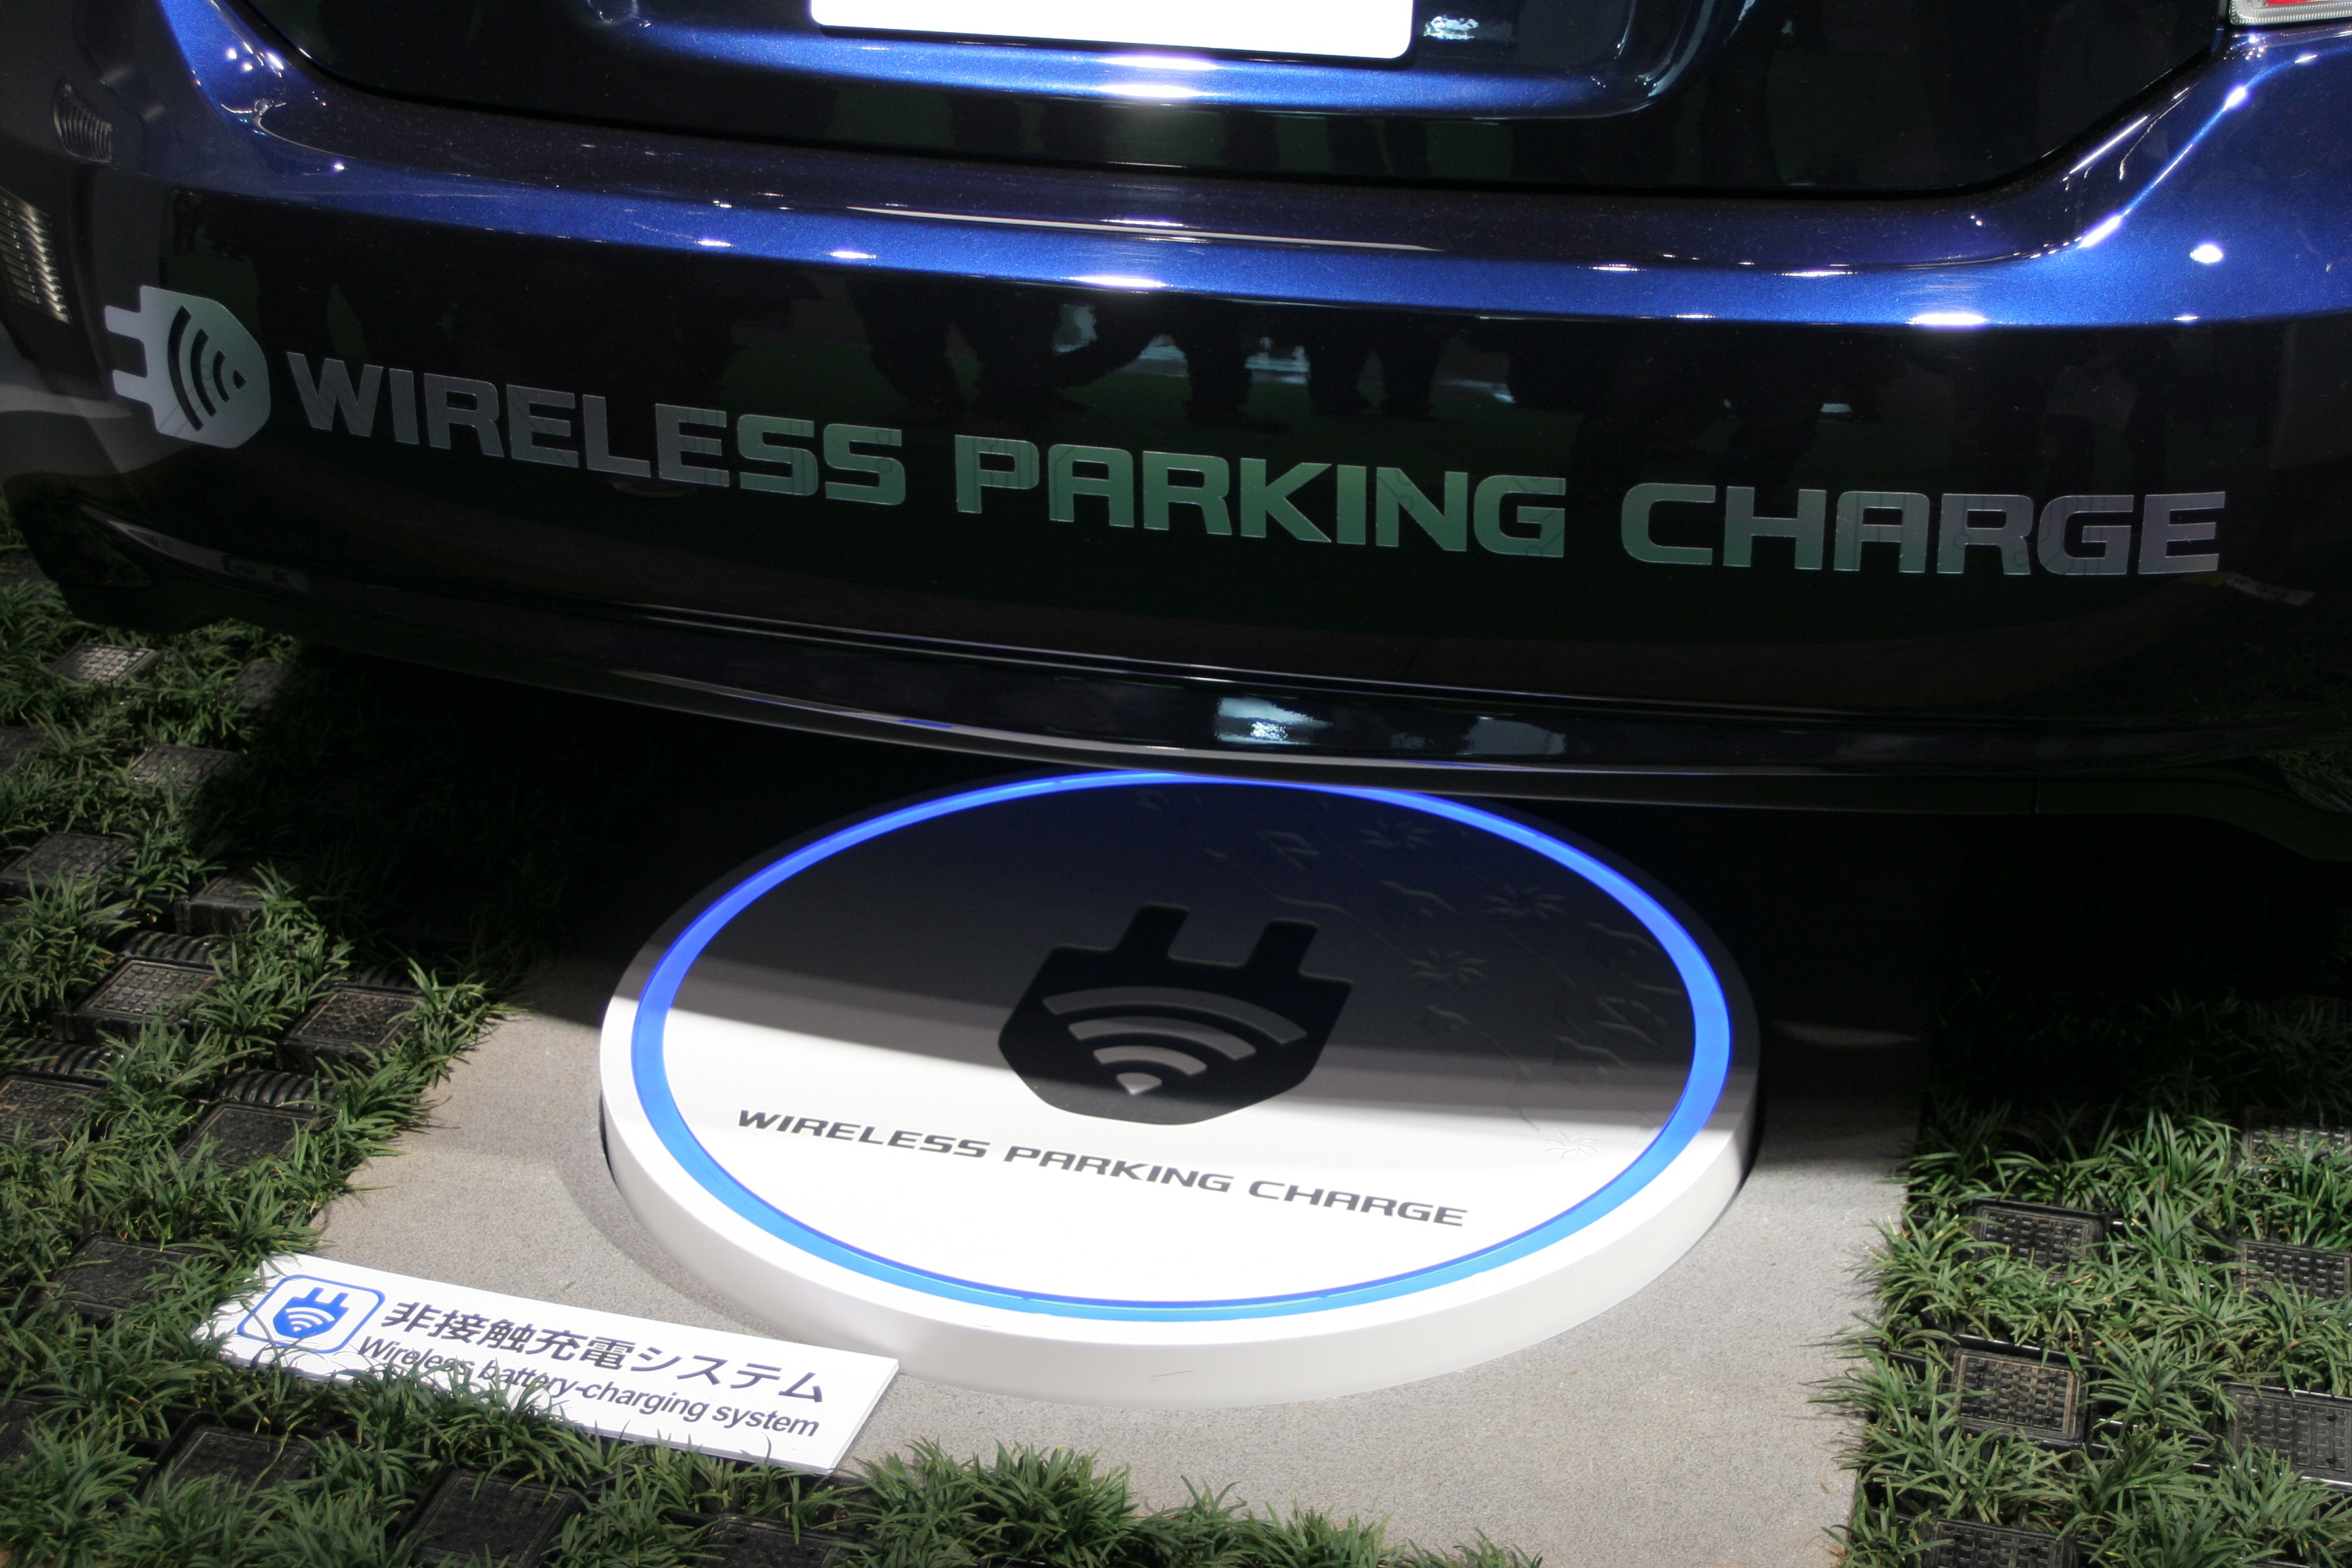 Electric_car_wireless_parking_charge_closeup